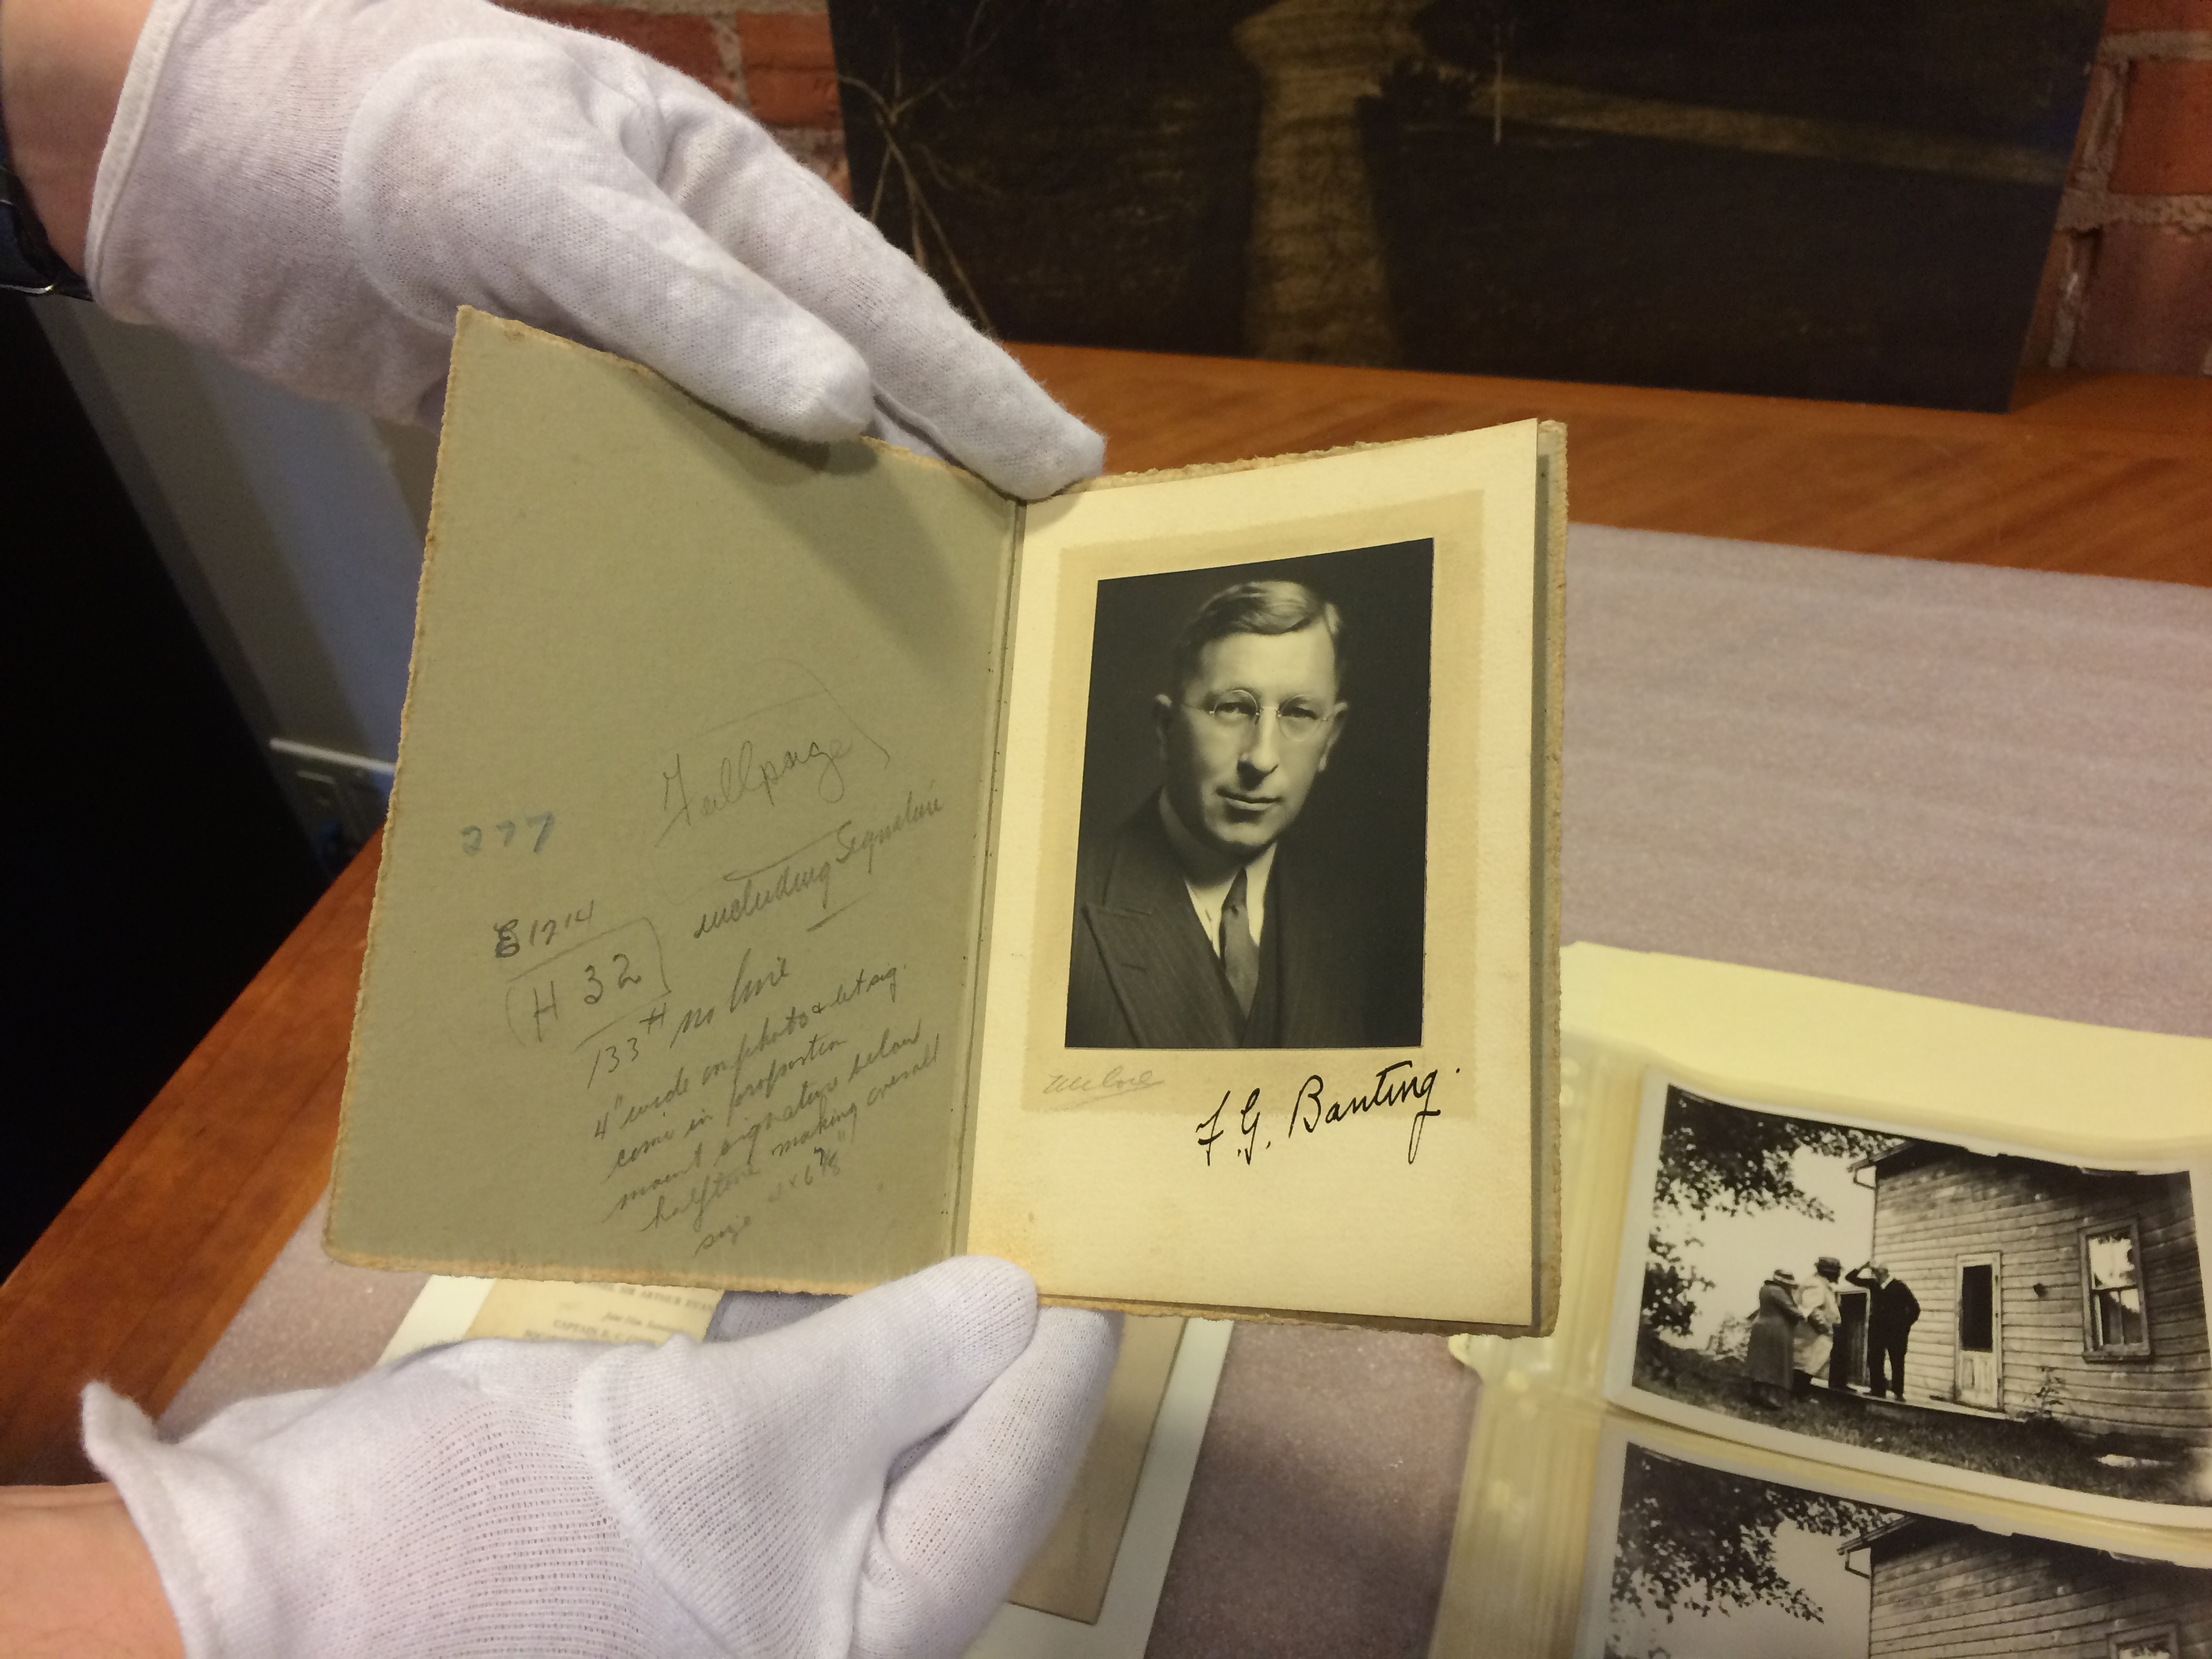 Signed image of Frederick Banting to his friend Bull